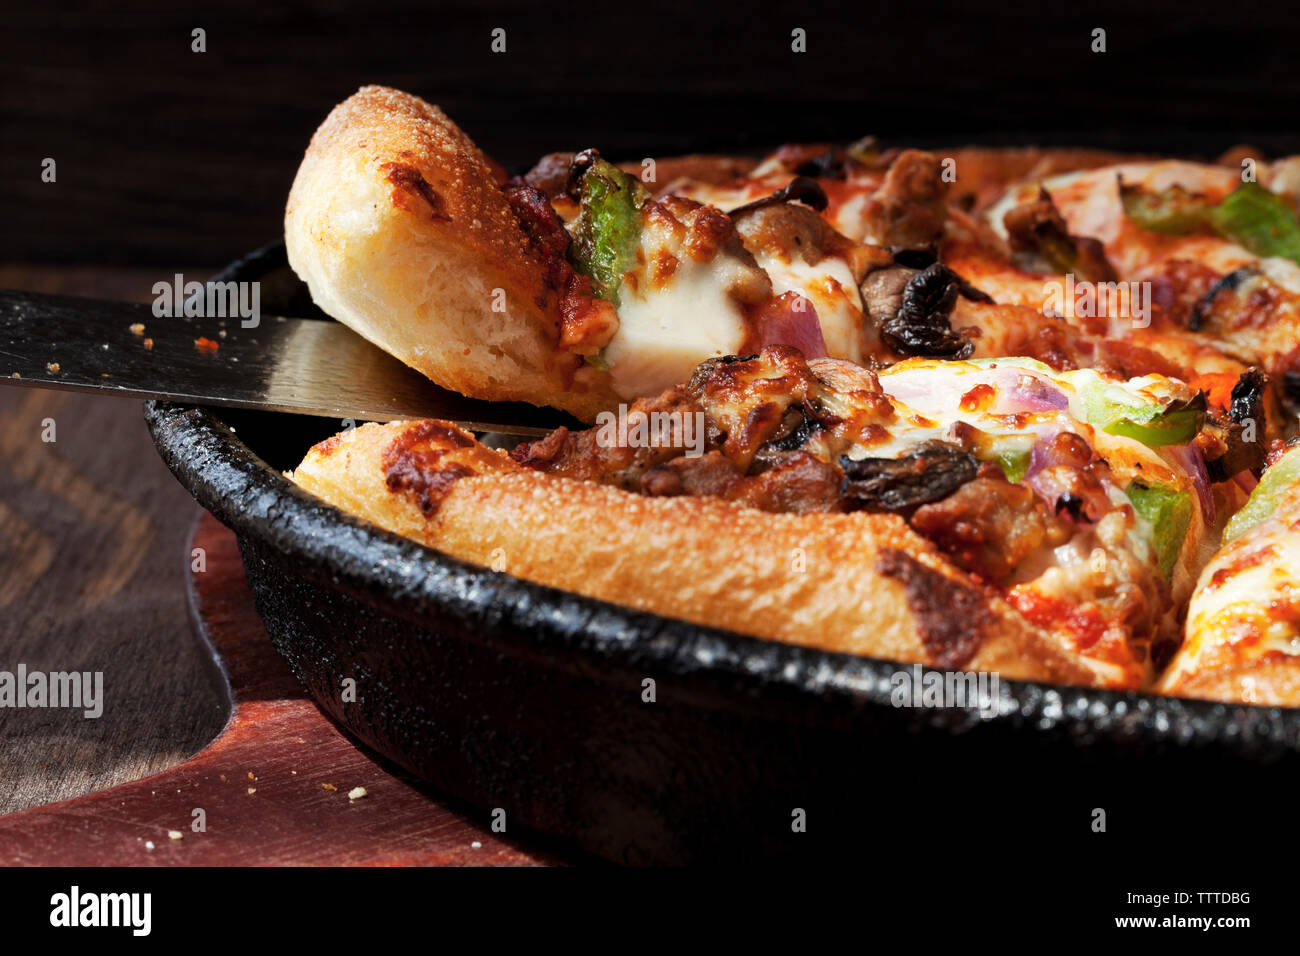 Close-up of spatula in pizza - Stock Image